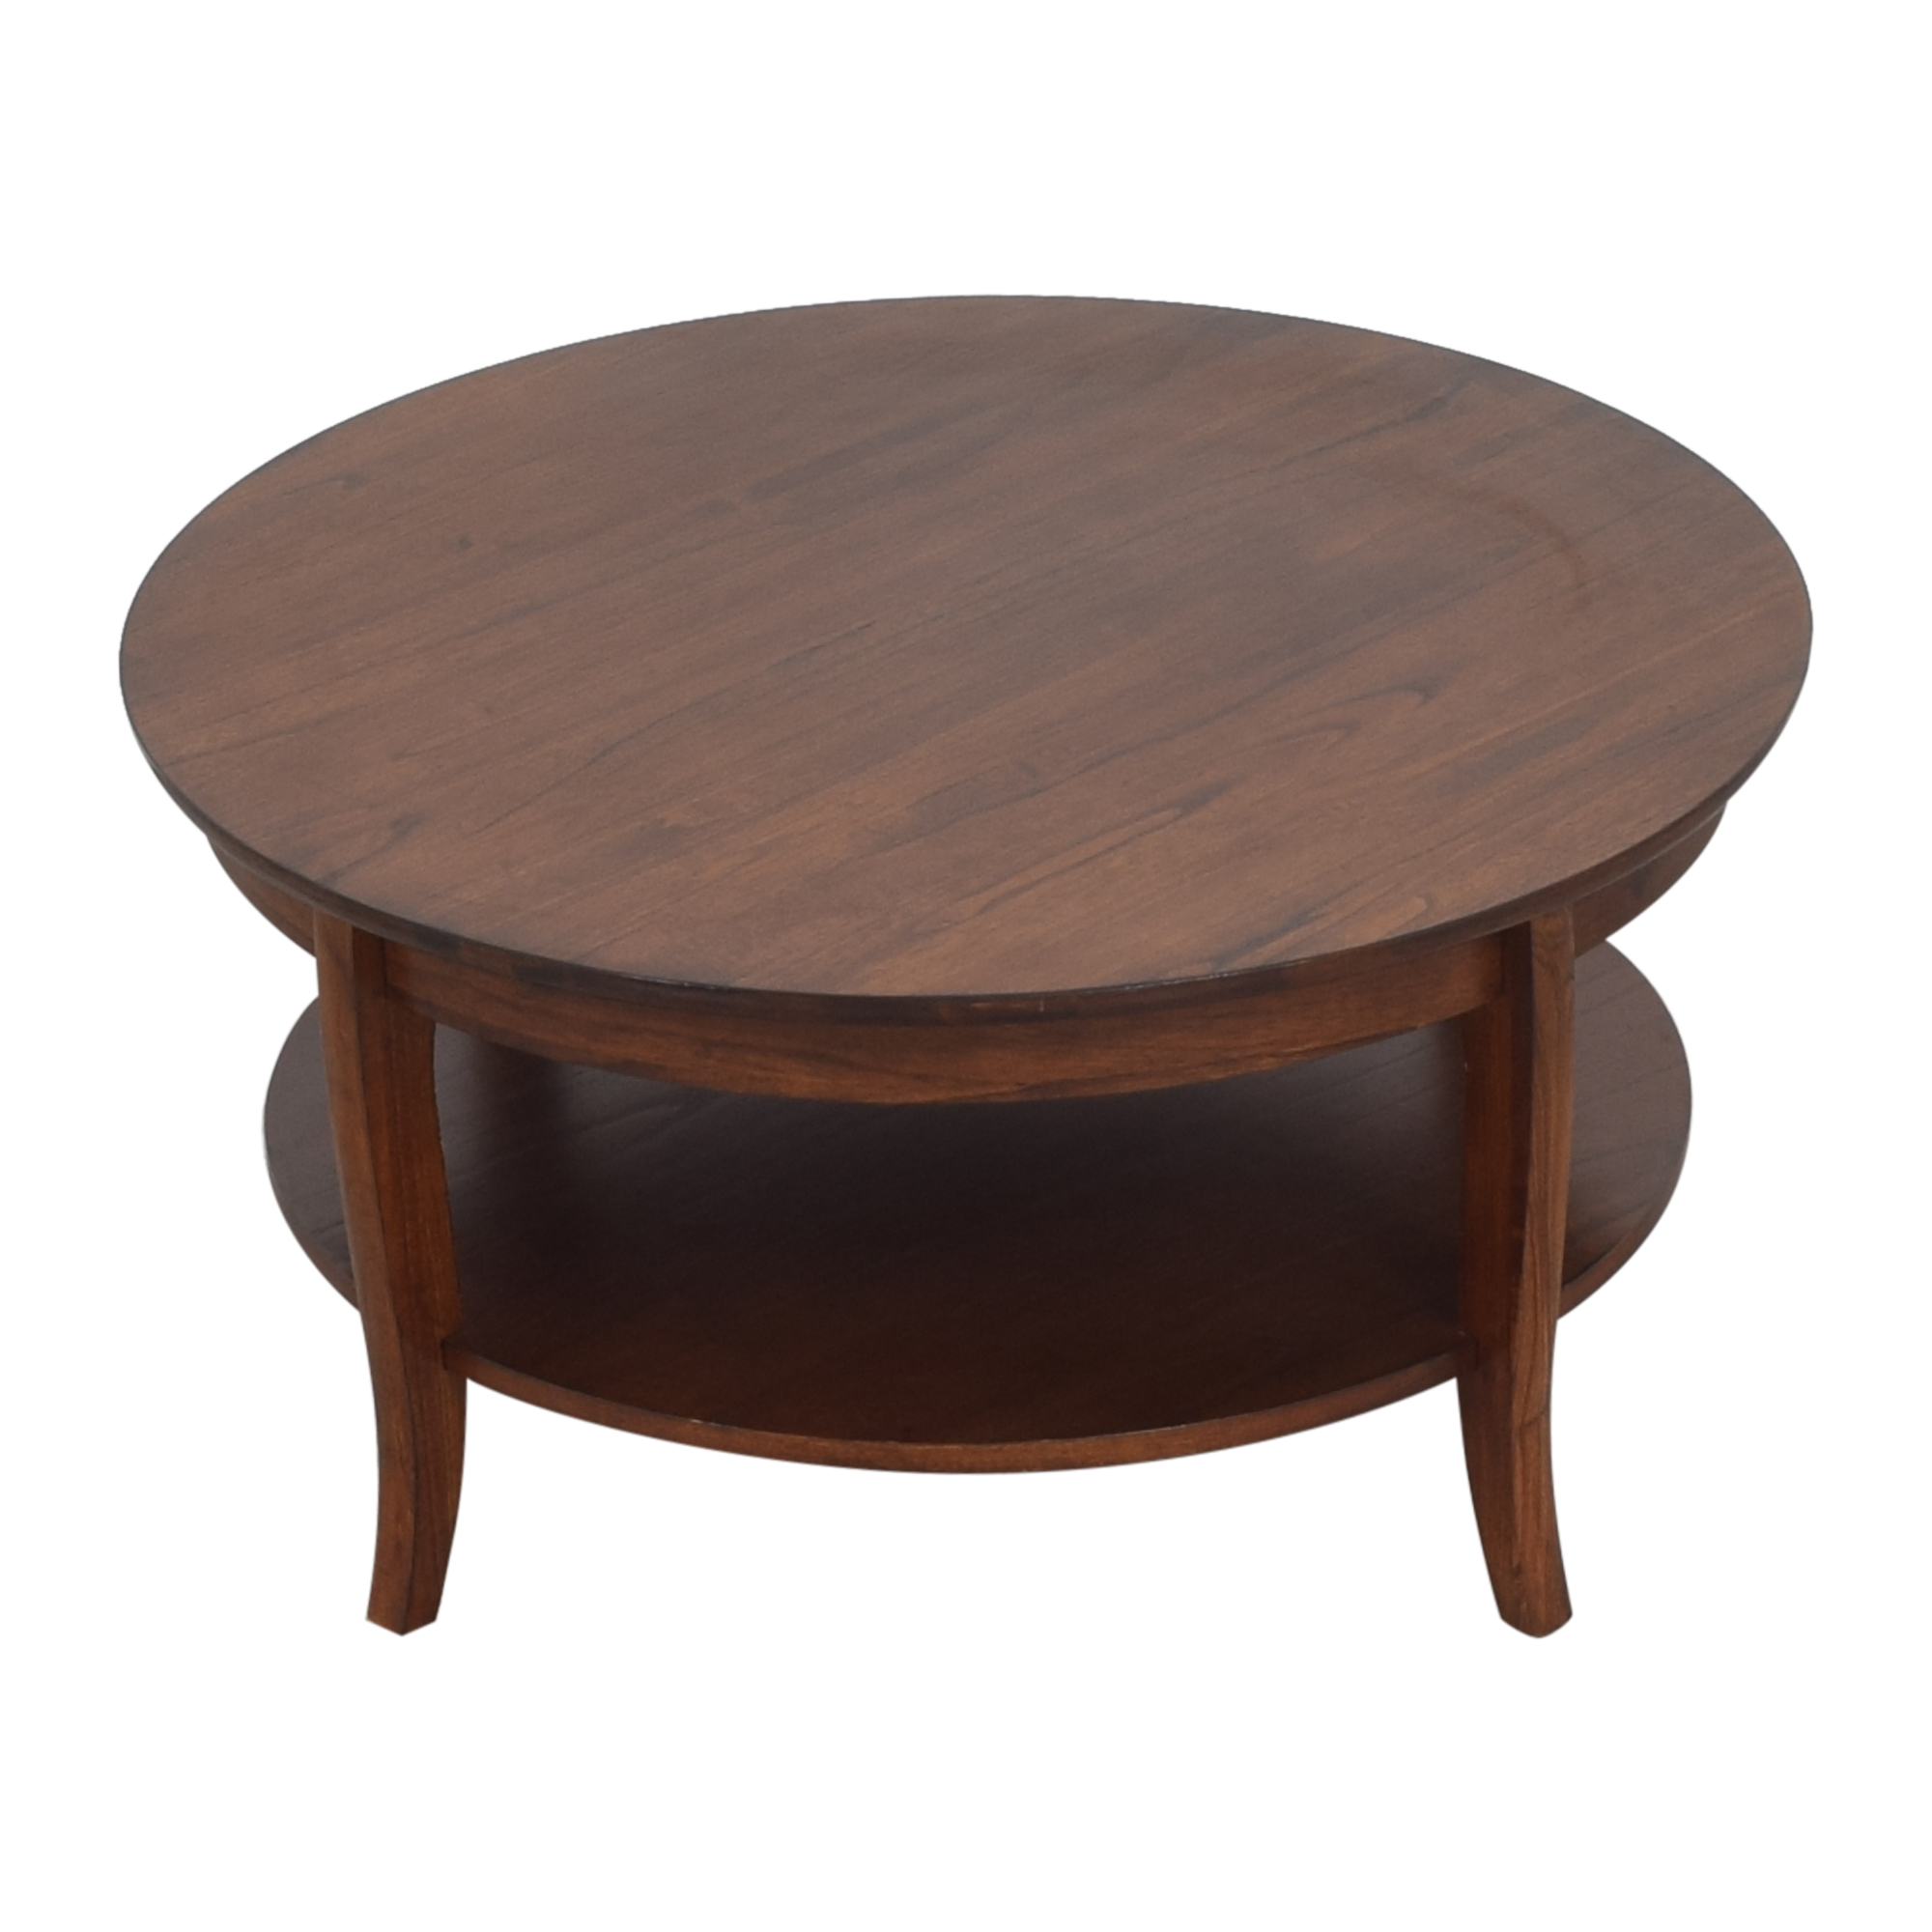 shop Macy's Round Coffee Table  Macy's